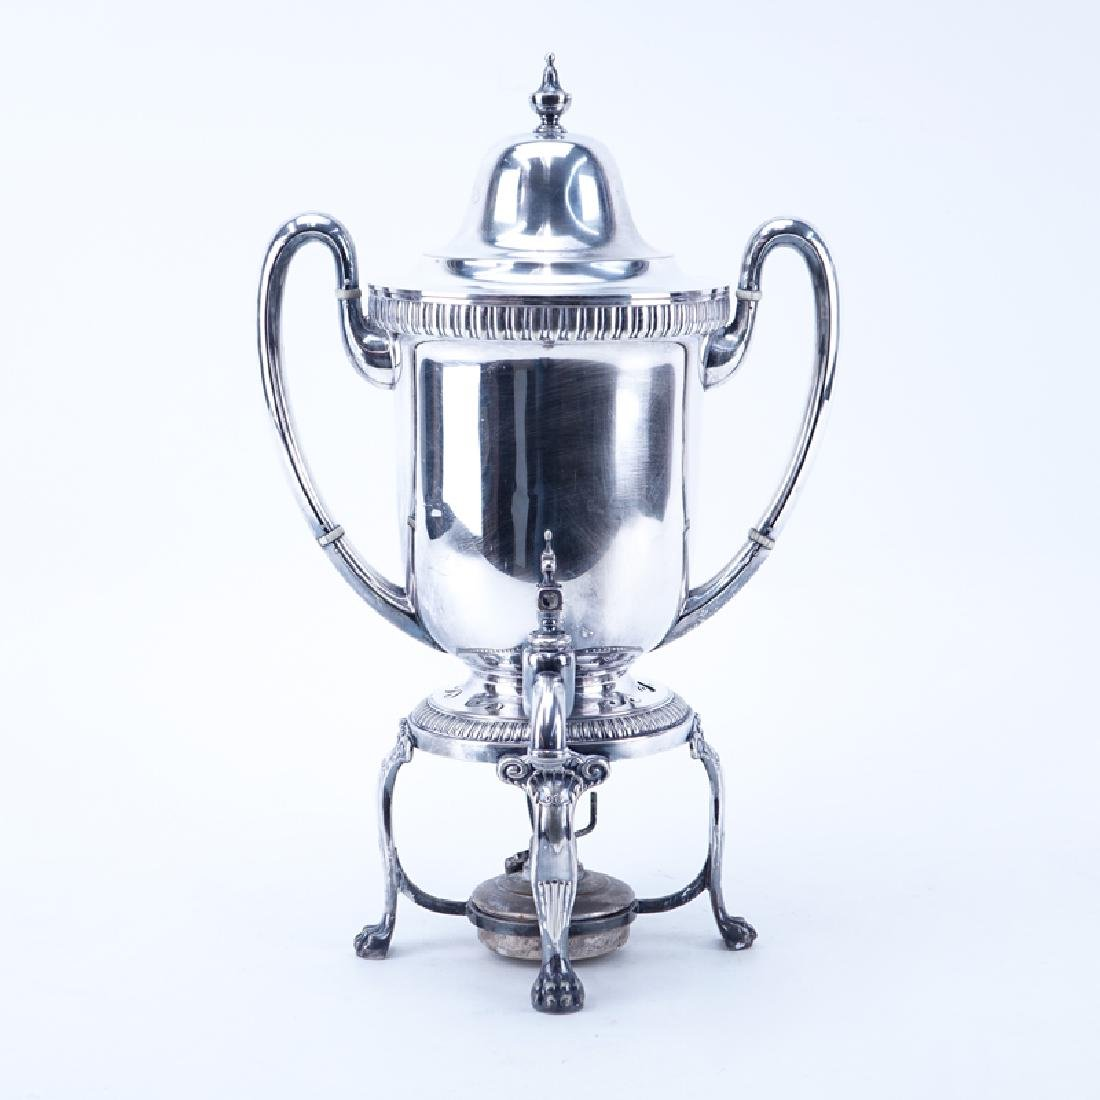 Antique Tiffany & Co. Silver Clad Samovar